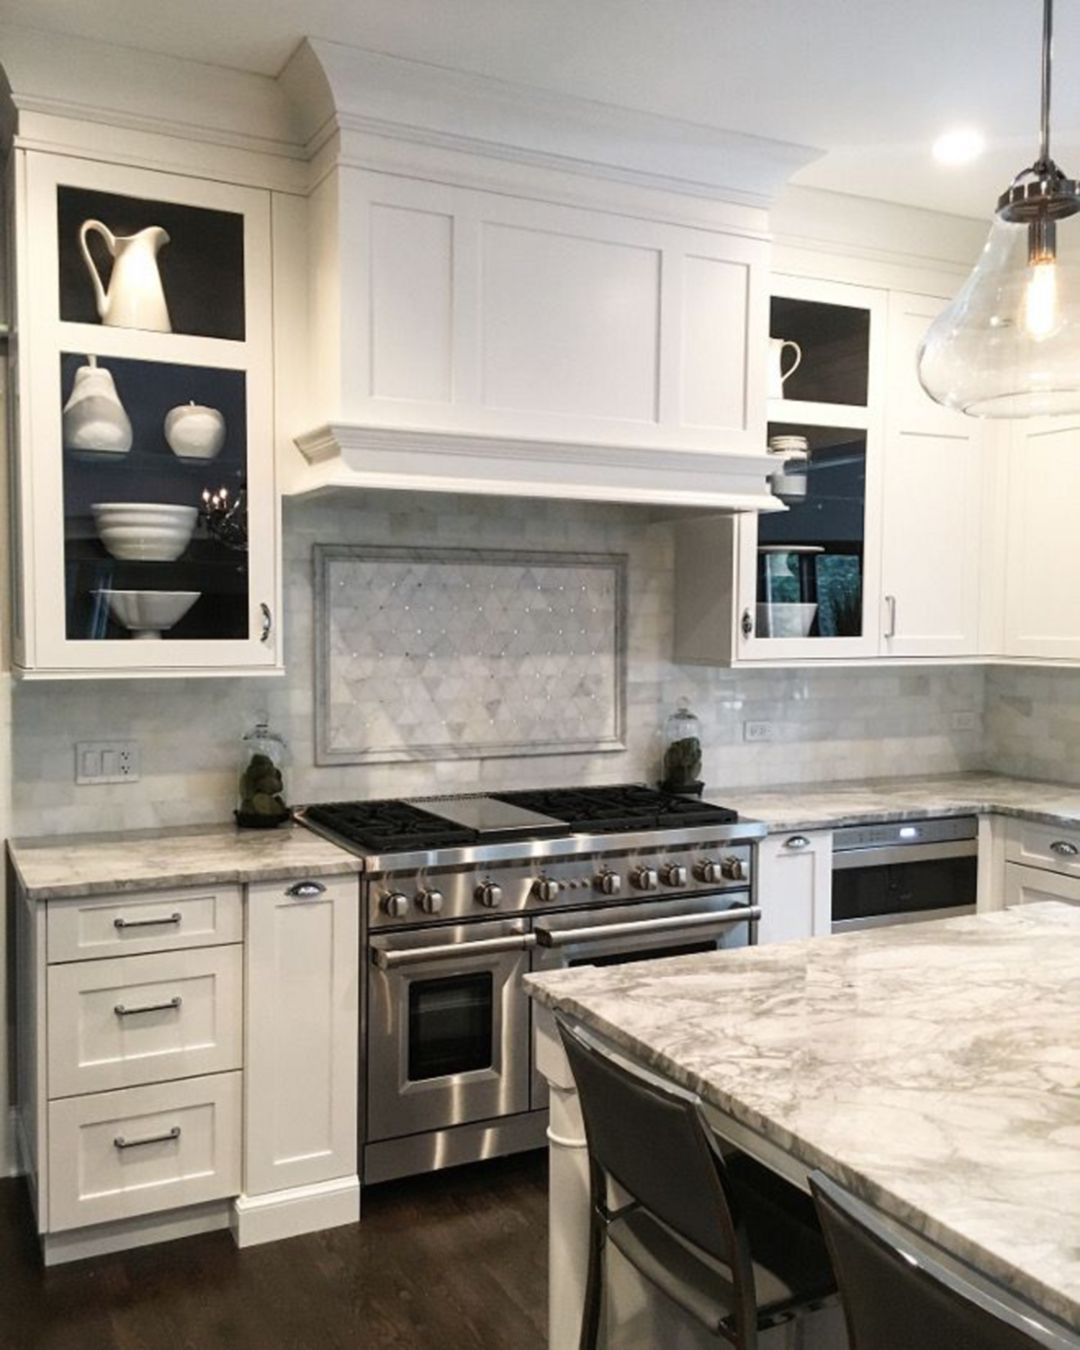 20 Charming Kitchen Cabinet Decorating Ideas For You Try